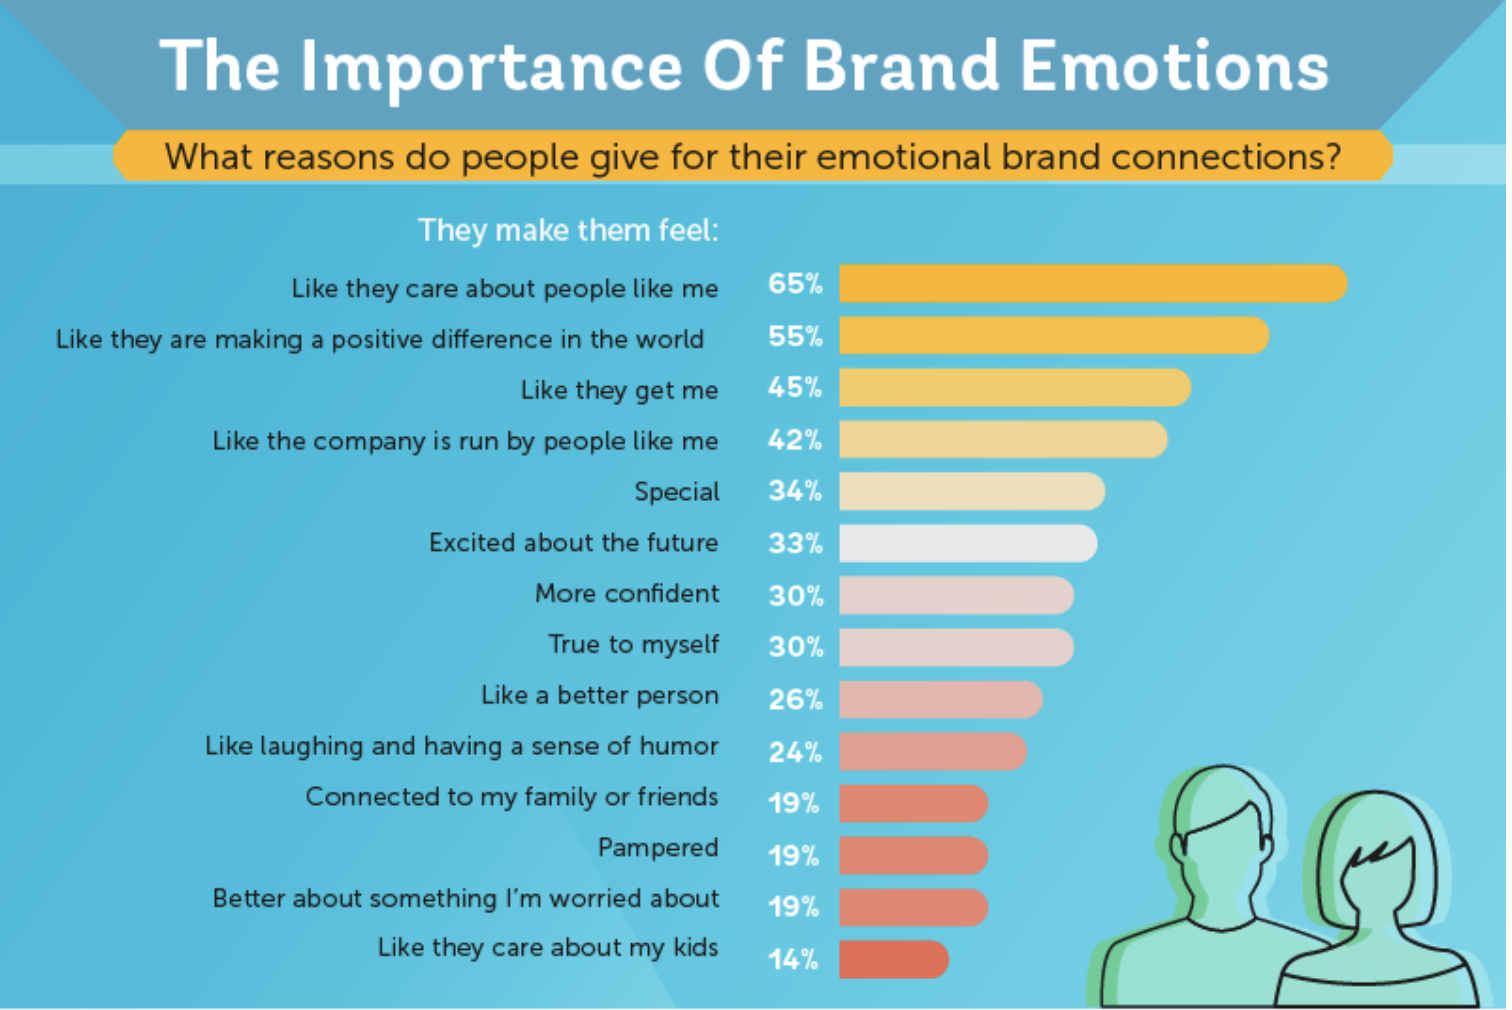 the importance of brand emotions